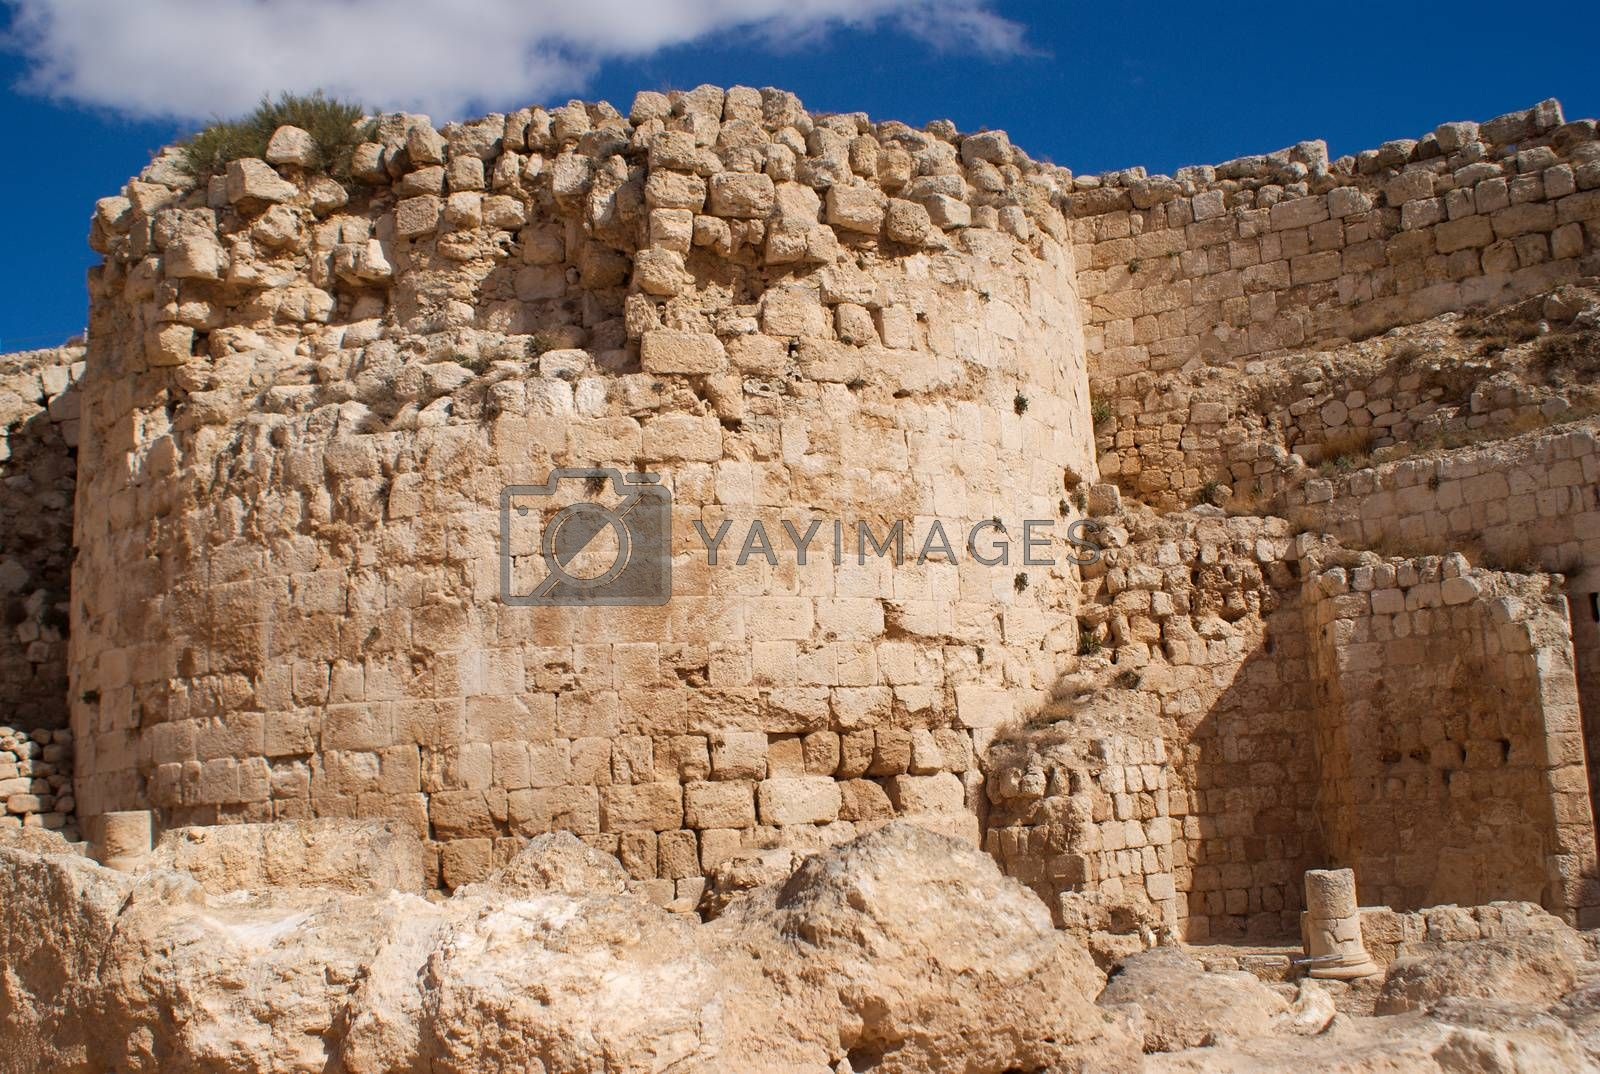 Herodion ruins in Israel by javax